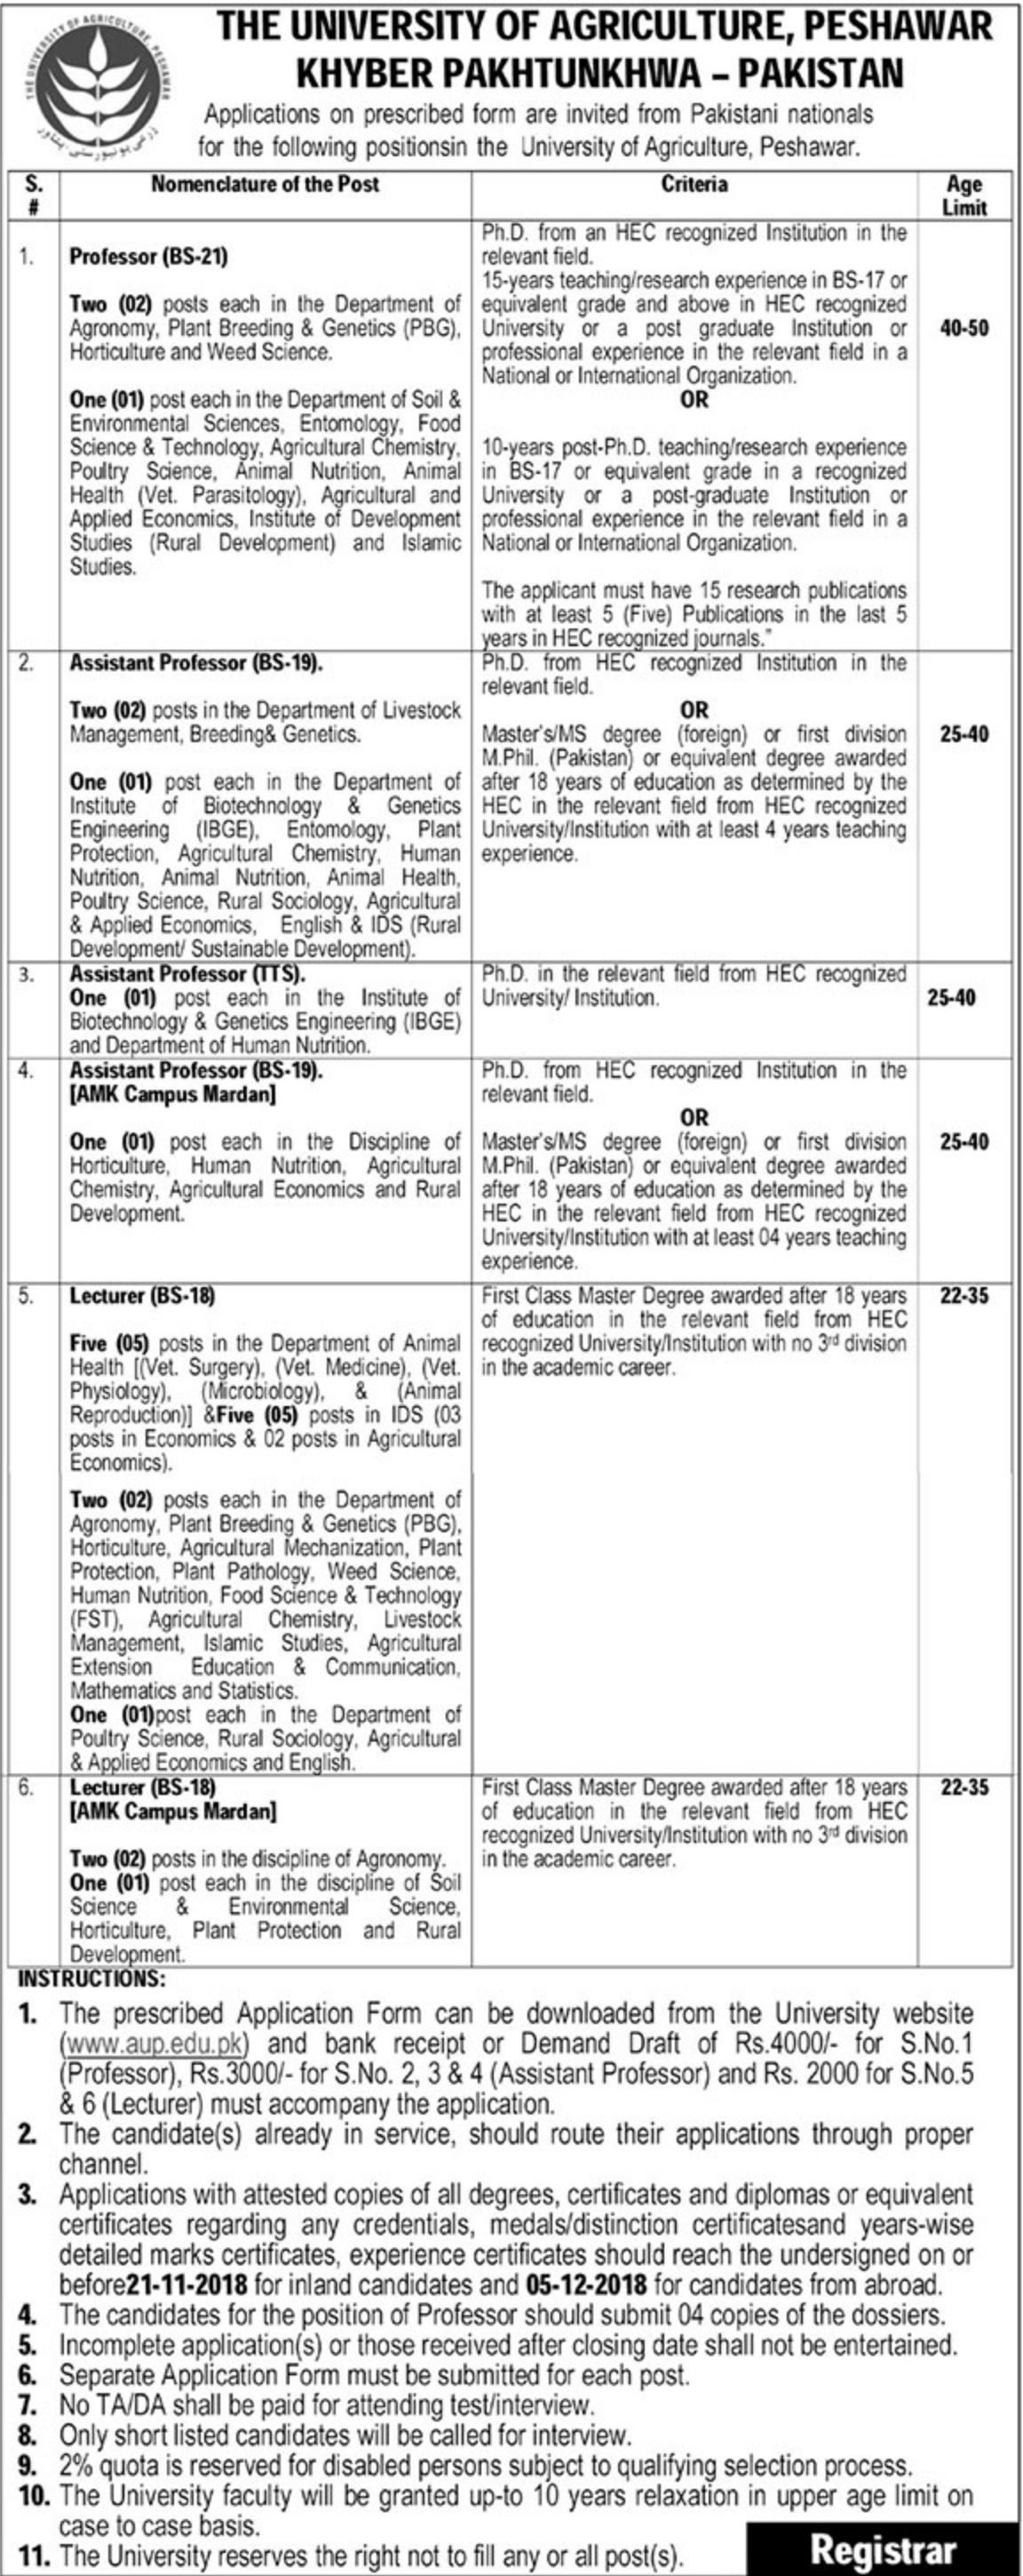 University of Agriculture Peshawar Latest Jobs 2018